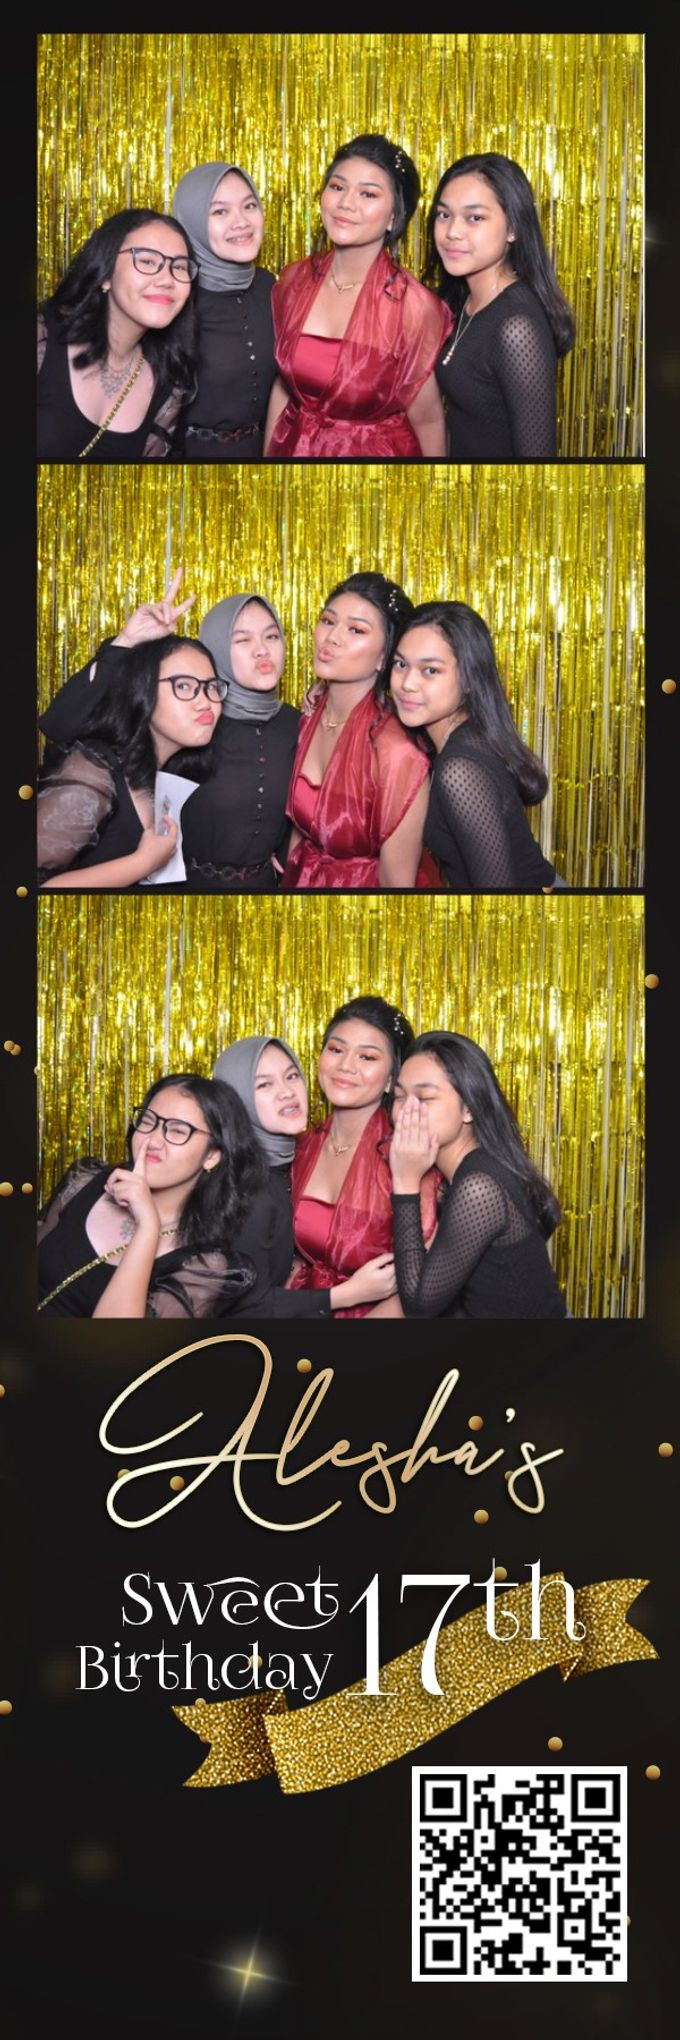 SRIPE PHOTOBOOTH by Picto Booth - 010